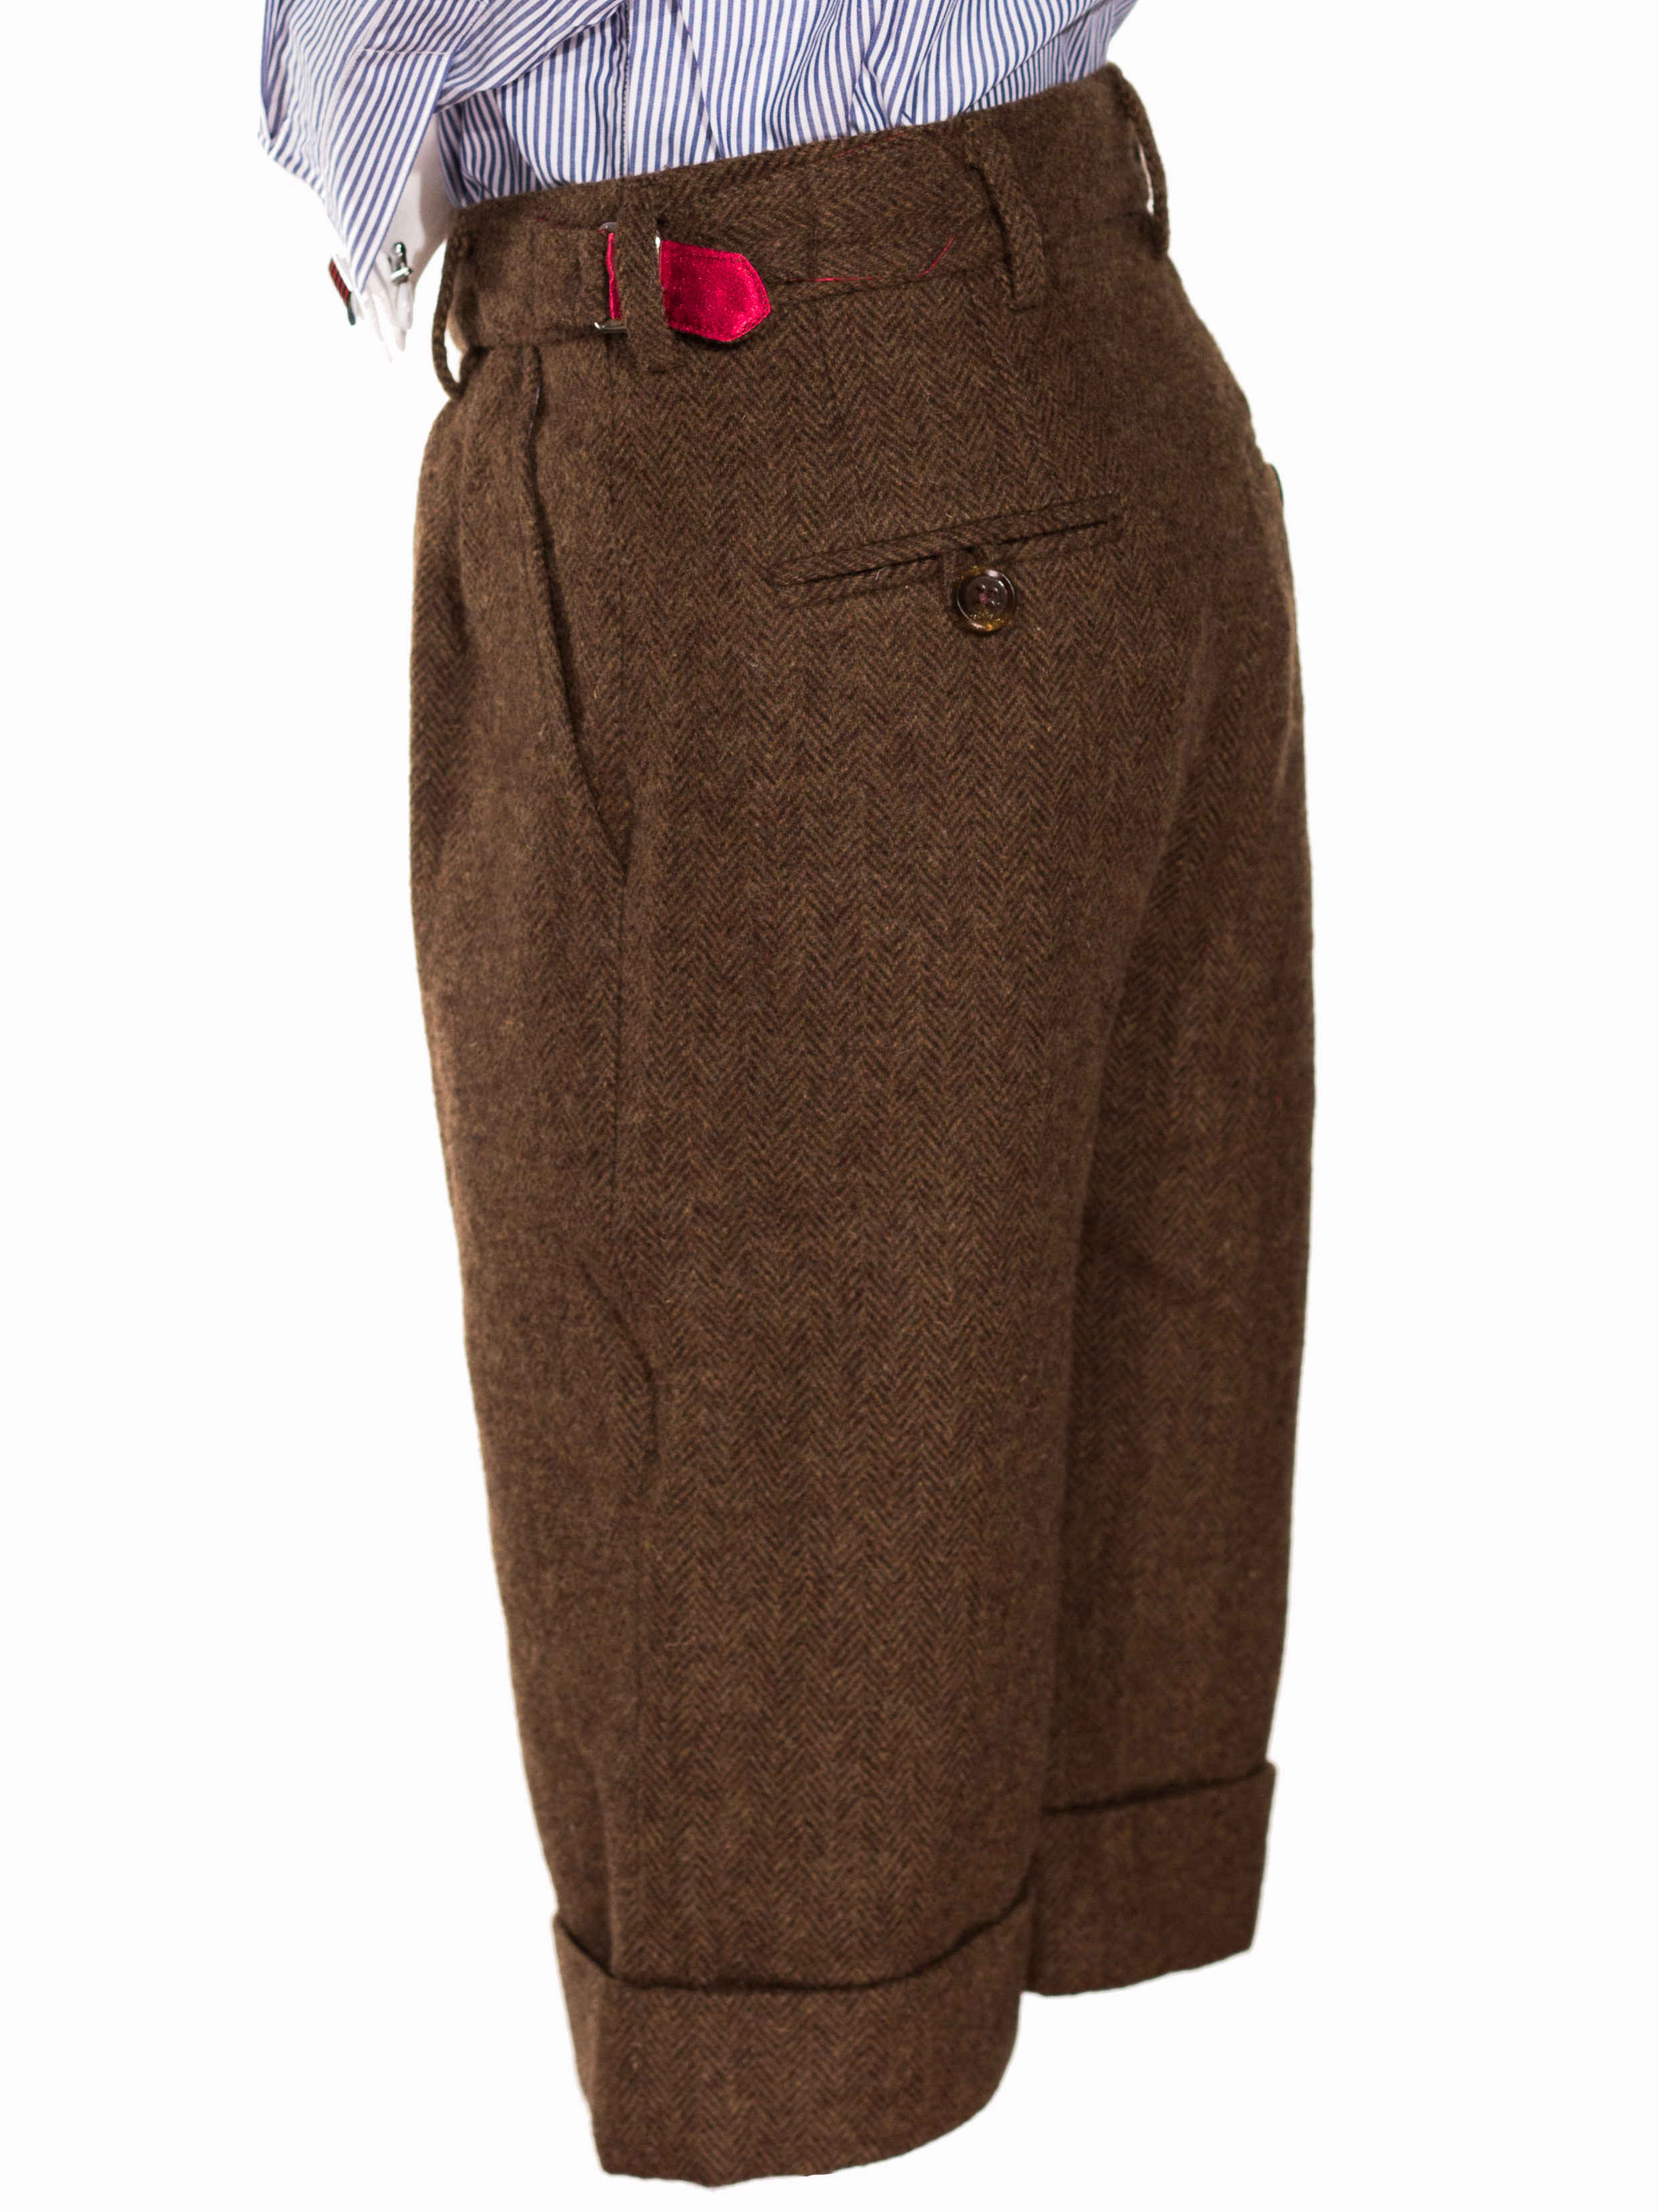 Patrick - Pantalon marron à chevrons